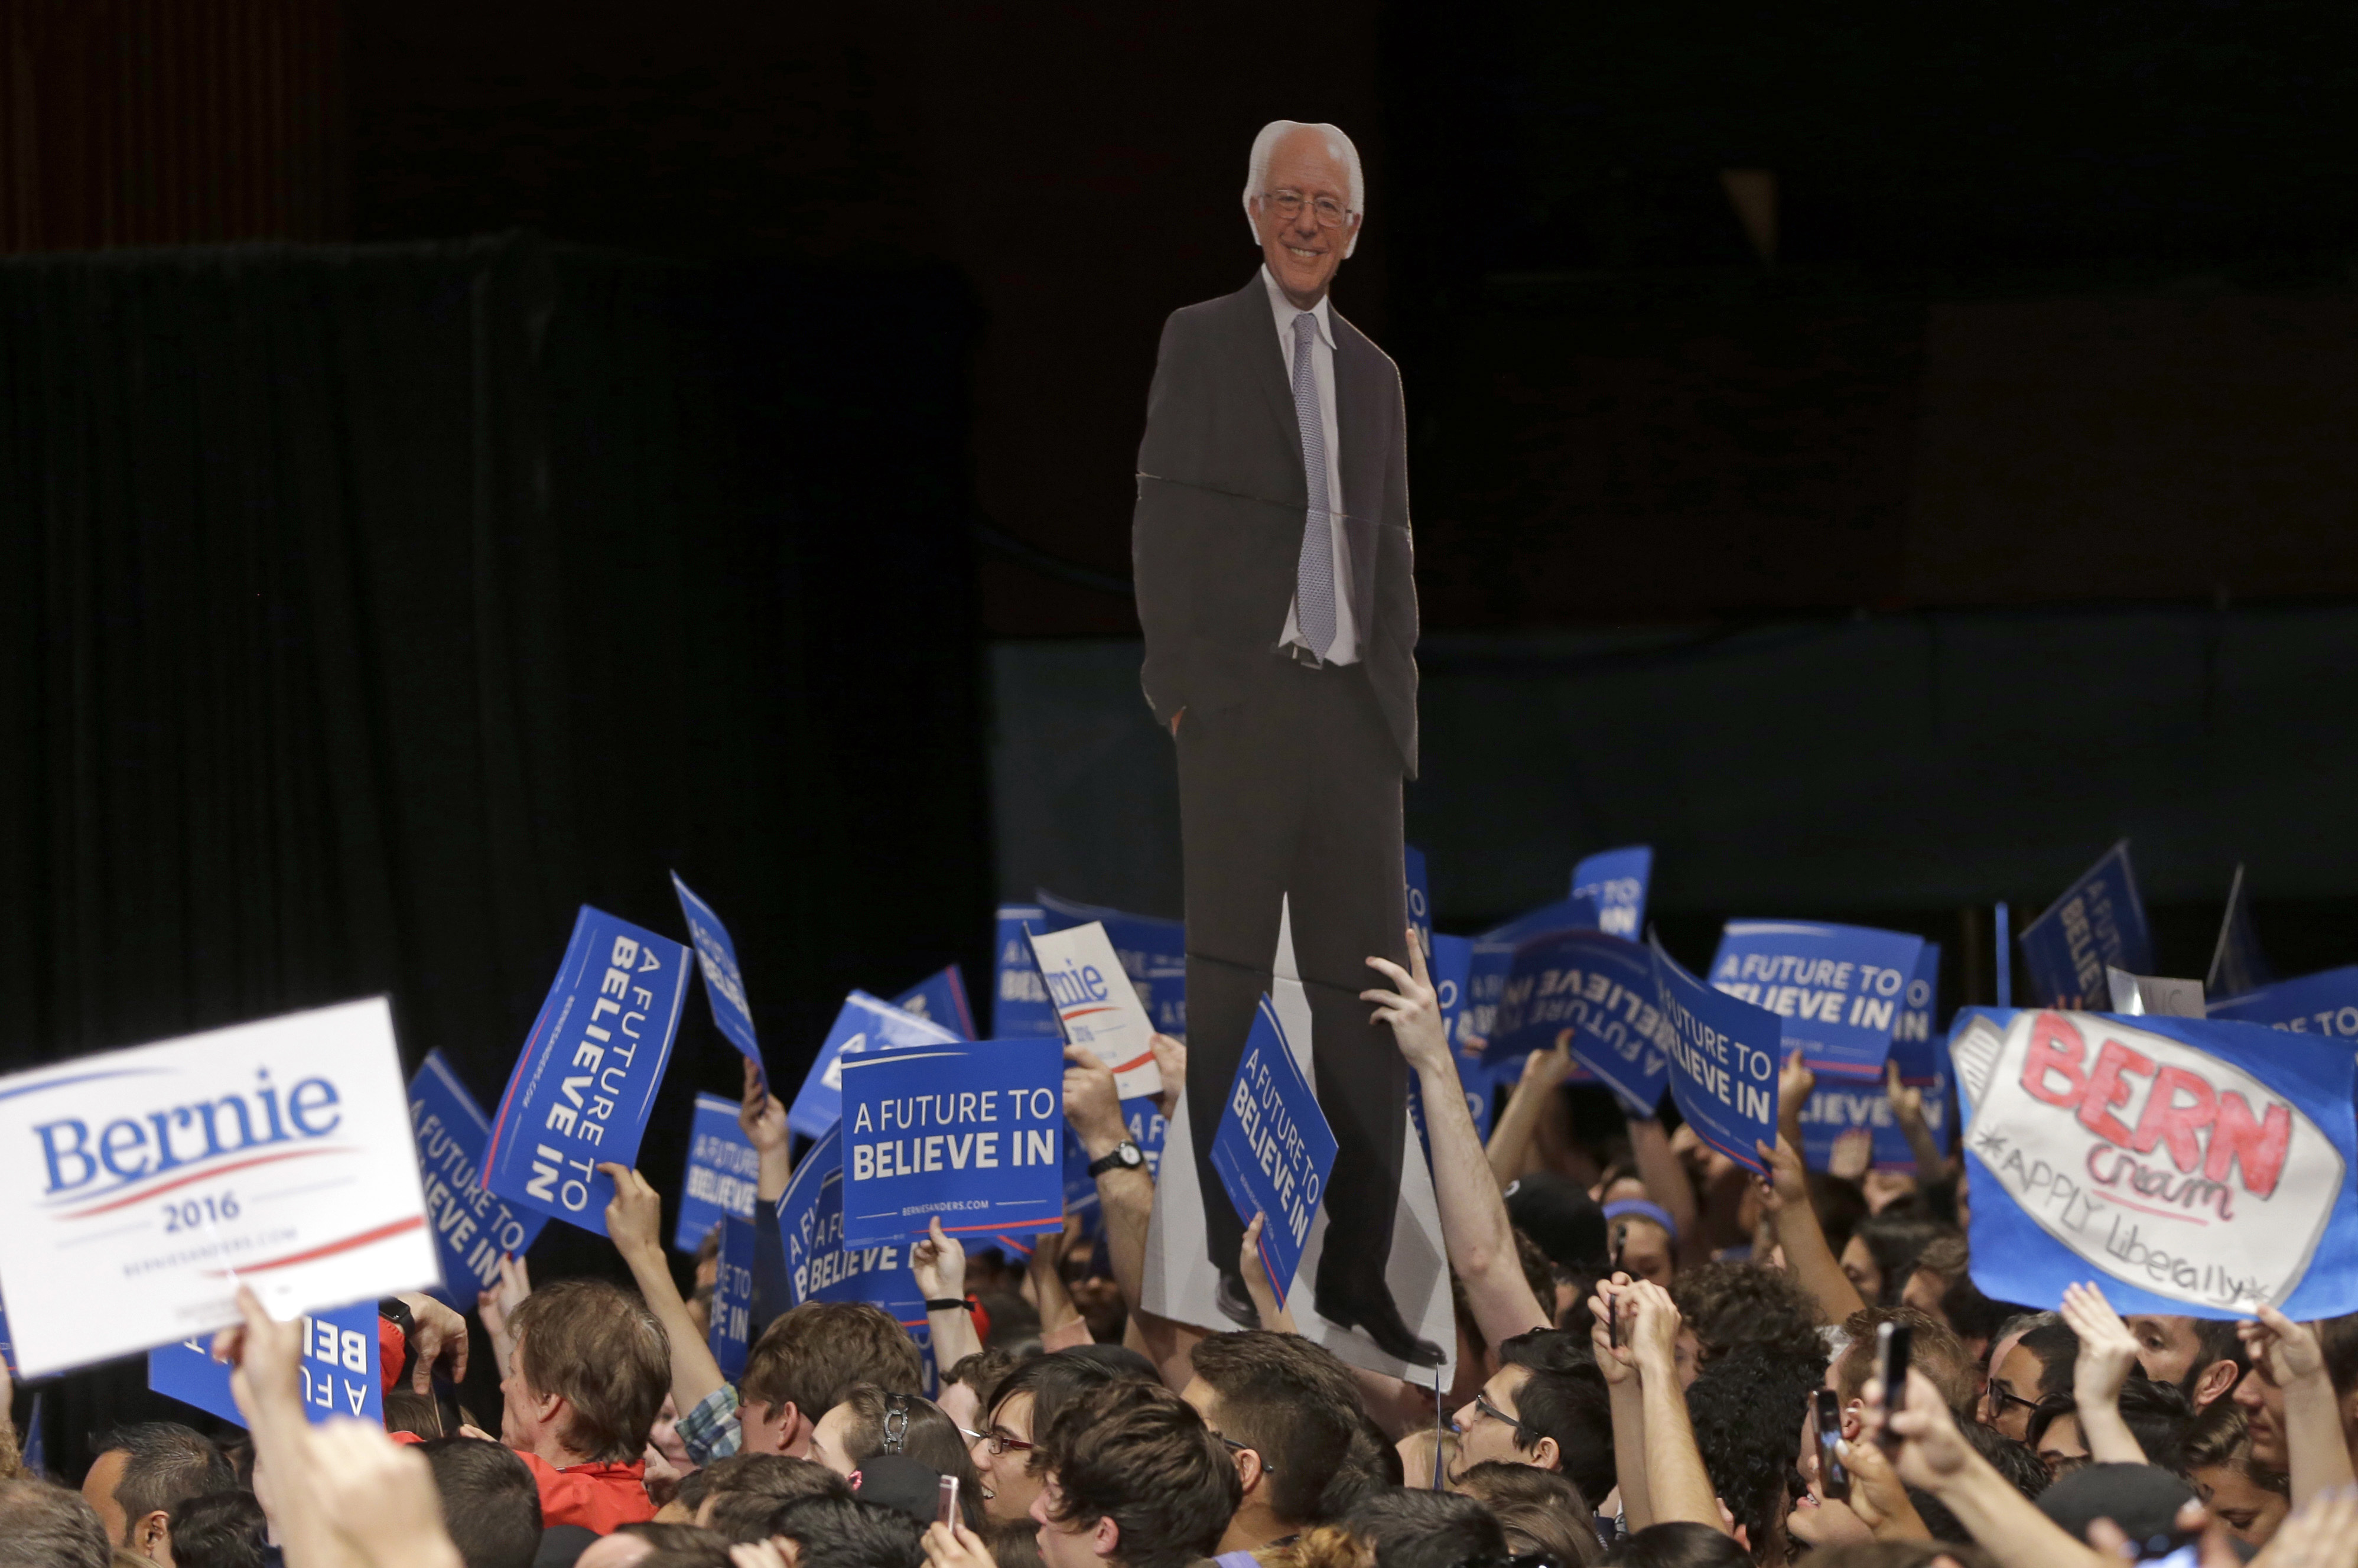 Supporters display a cardboard cutout of Democratic presidential candidate, Sen. Bernie Sanders, I-Vt., at a campaign rally in Miami, Florida, March 8, 2016.